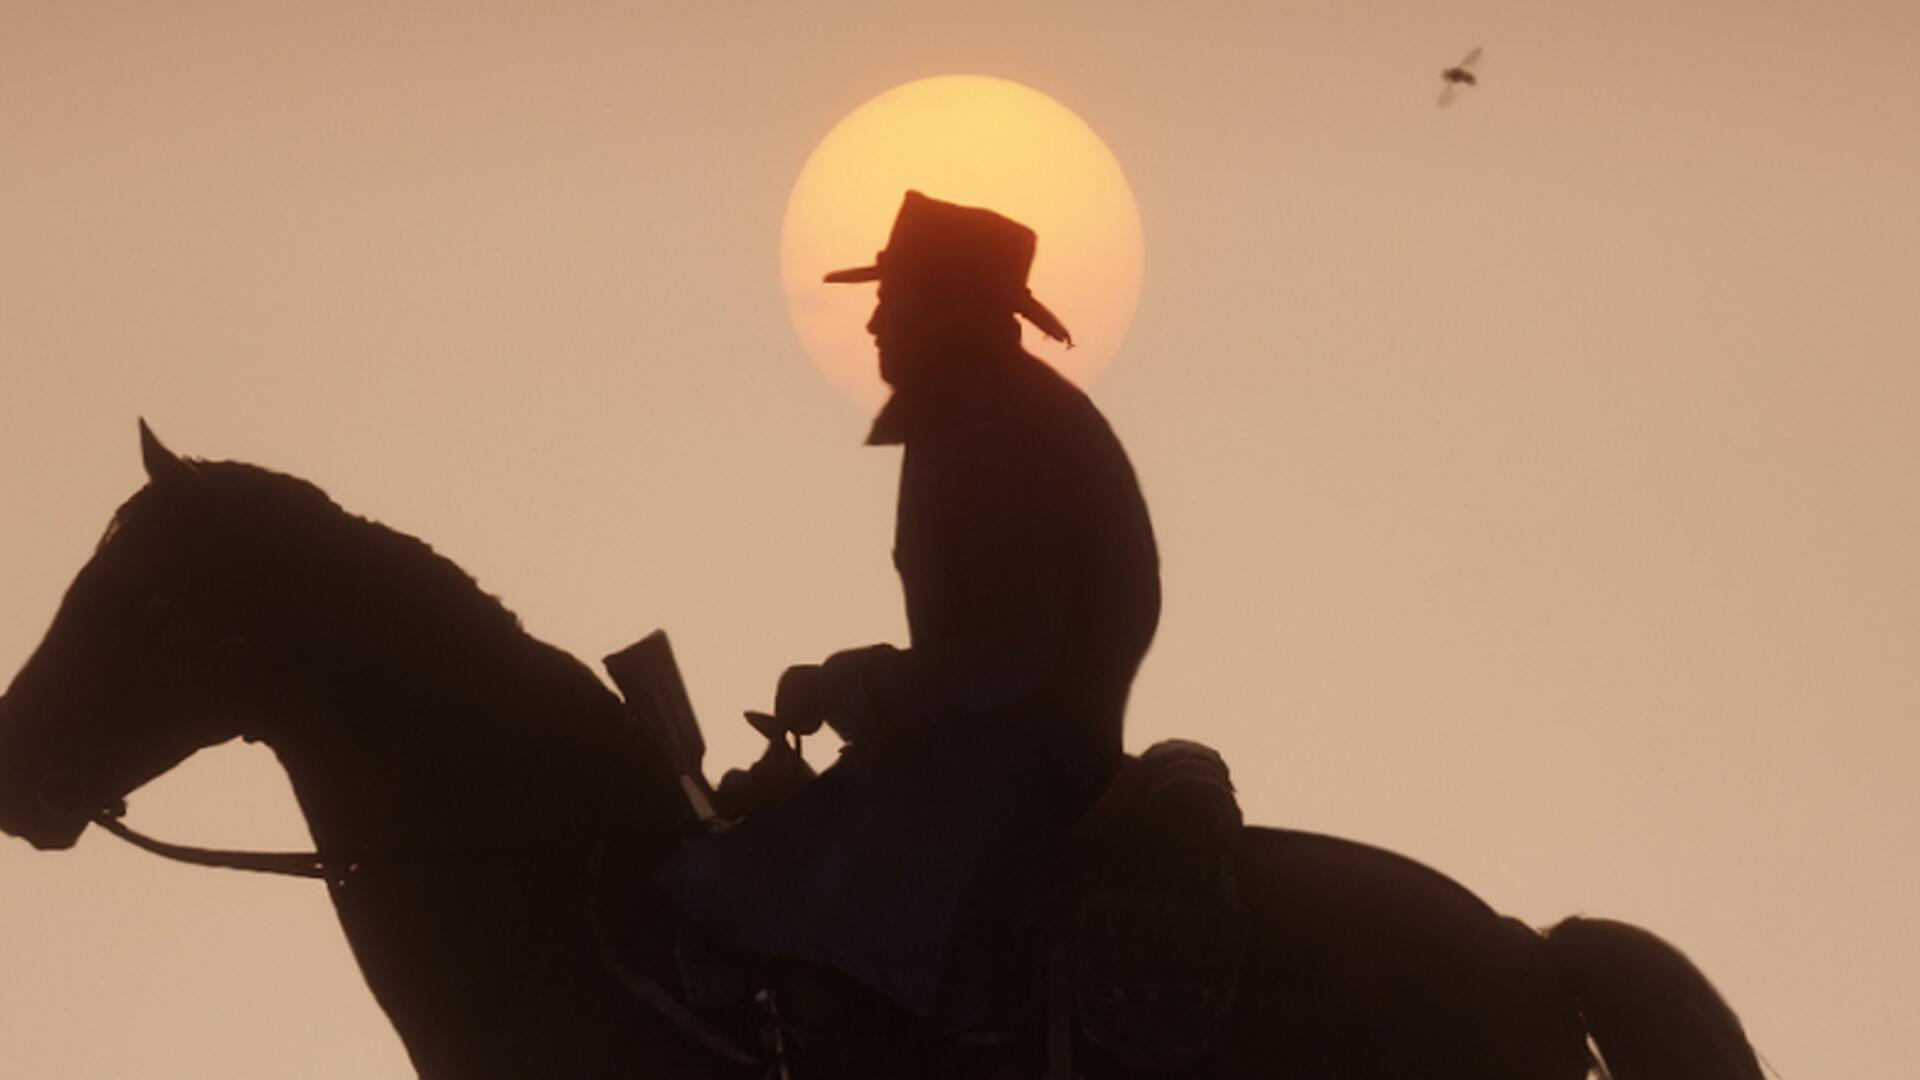 What We've Learned From the Latest Red Dead Redemption 2 Screenshots